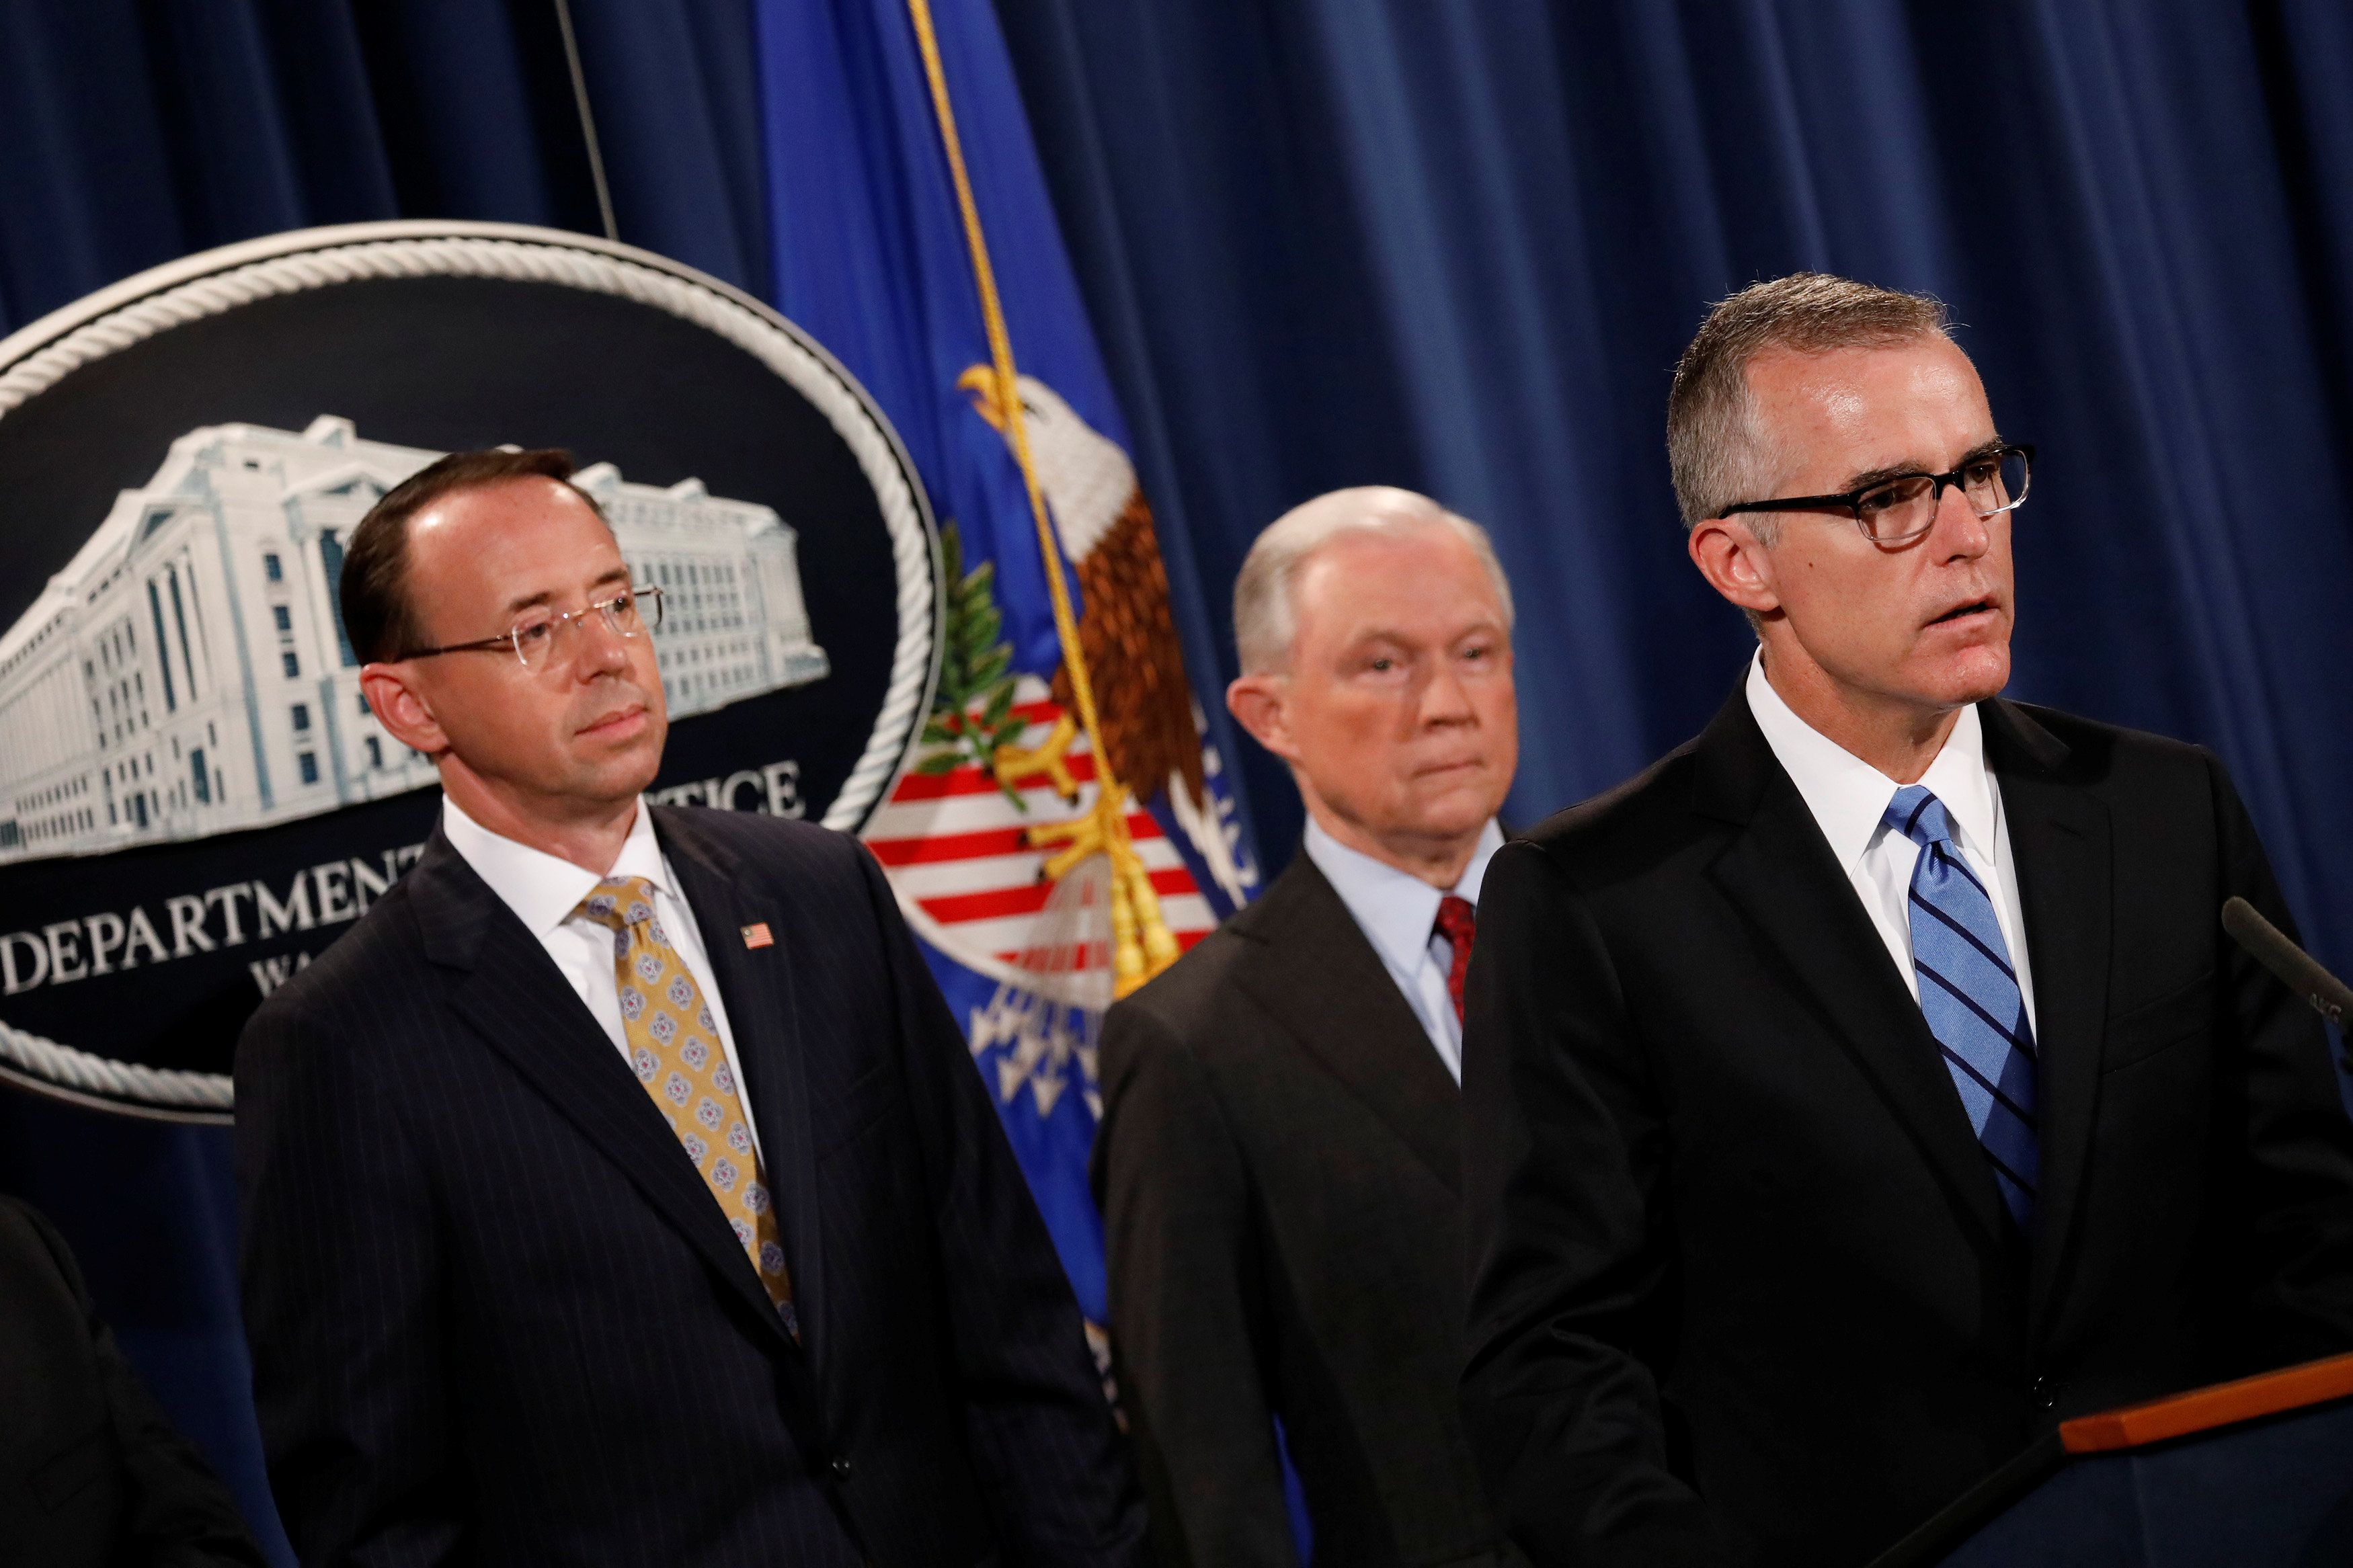 FBI acting Director Andrew McCabe speaks during a news conference, July 20, 2017.